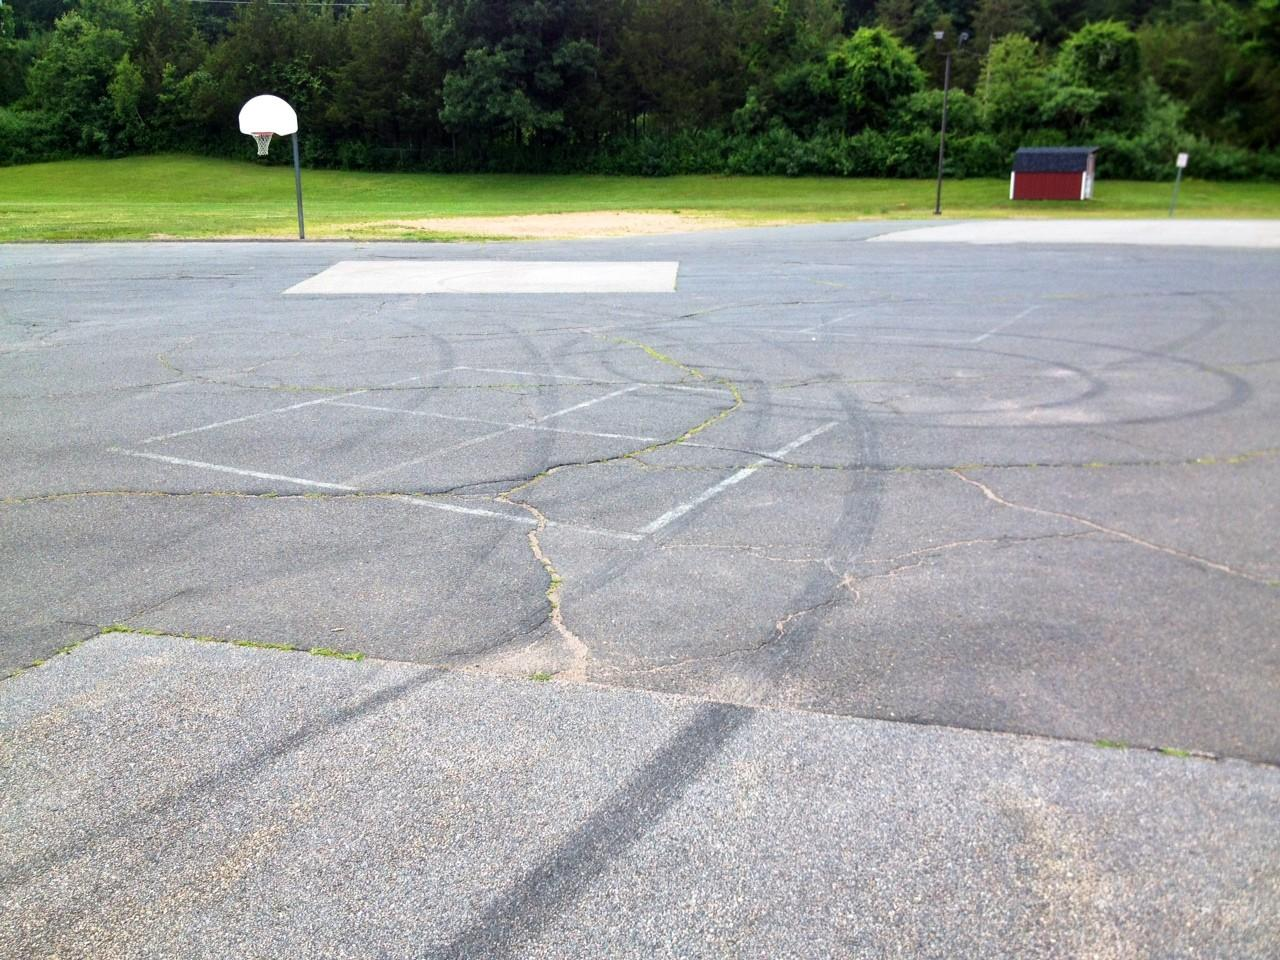 Tire marks allegedly left by teens at Hopewell Elementary School Sunday night.